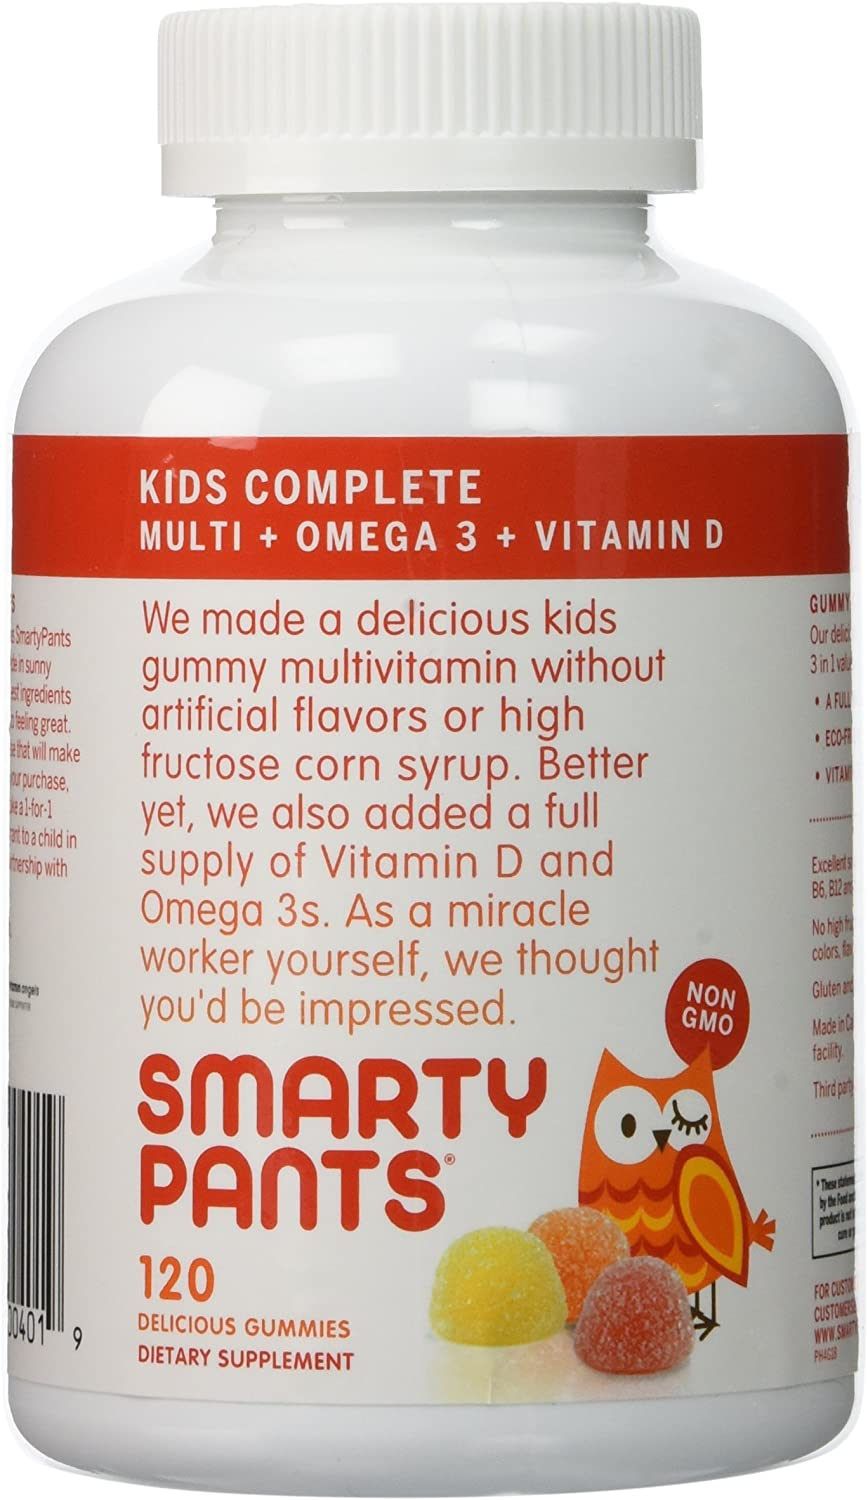 SmartyPants Vitamins Gummy Vitamins with Omega 3 Fish Oil and Vitamin D, Pack of 3 120 Count Each wcjyp37